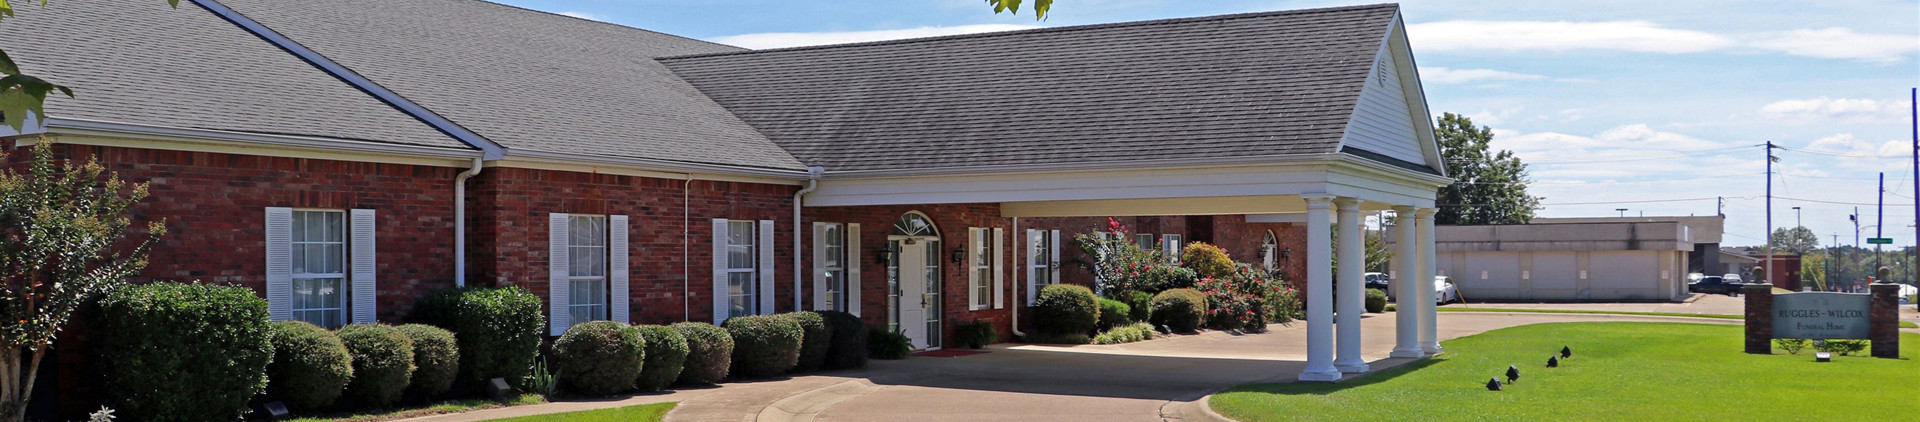 About Us | Ruggles-Wilcox Funeral Home